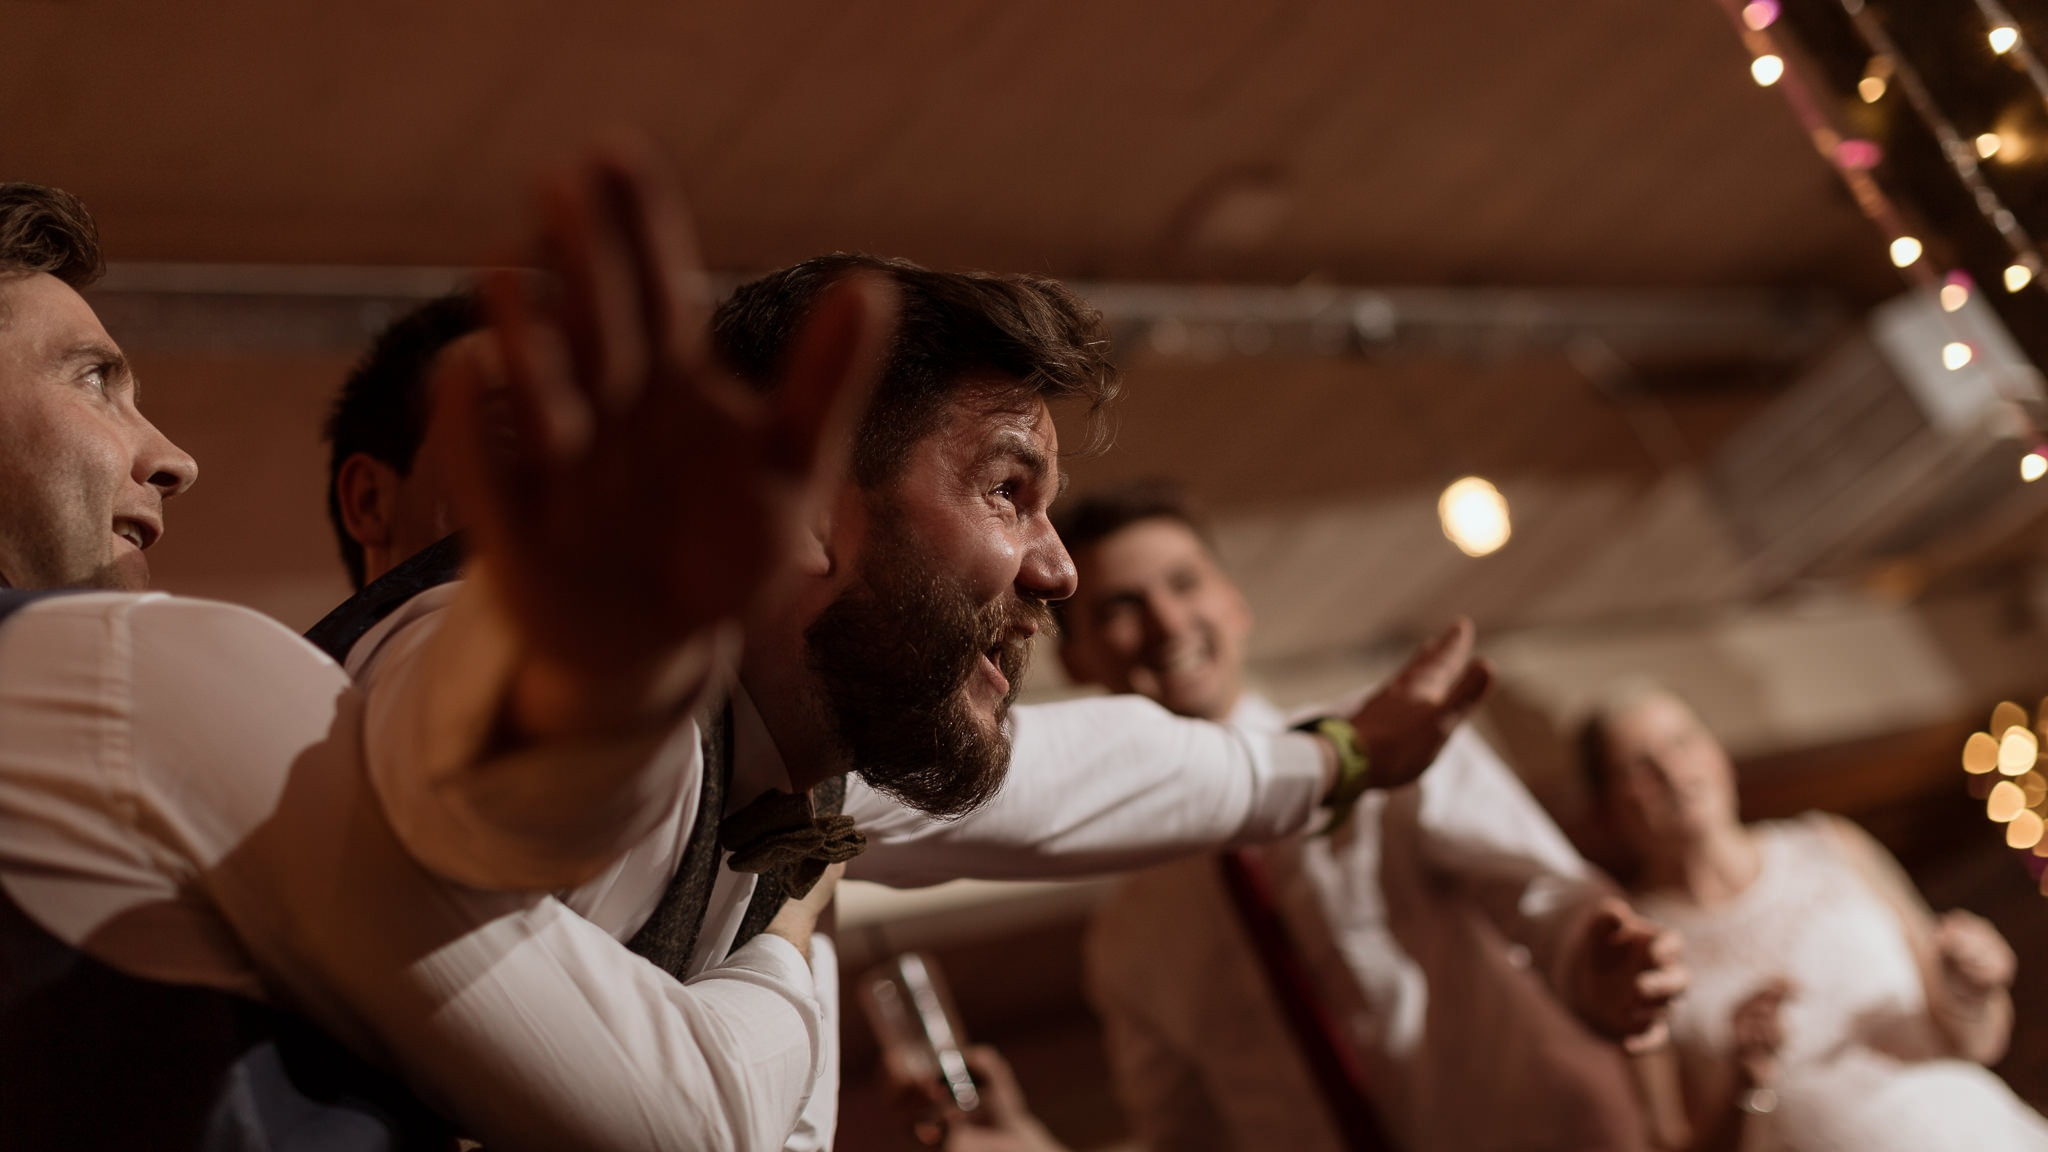 Victoria Warehouse Winter Wedding | Huw